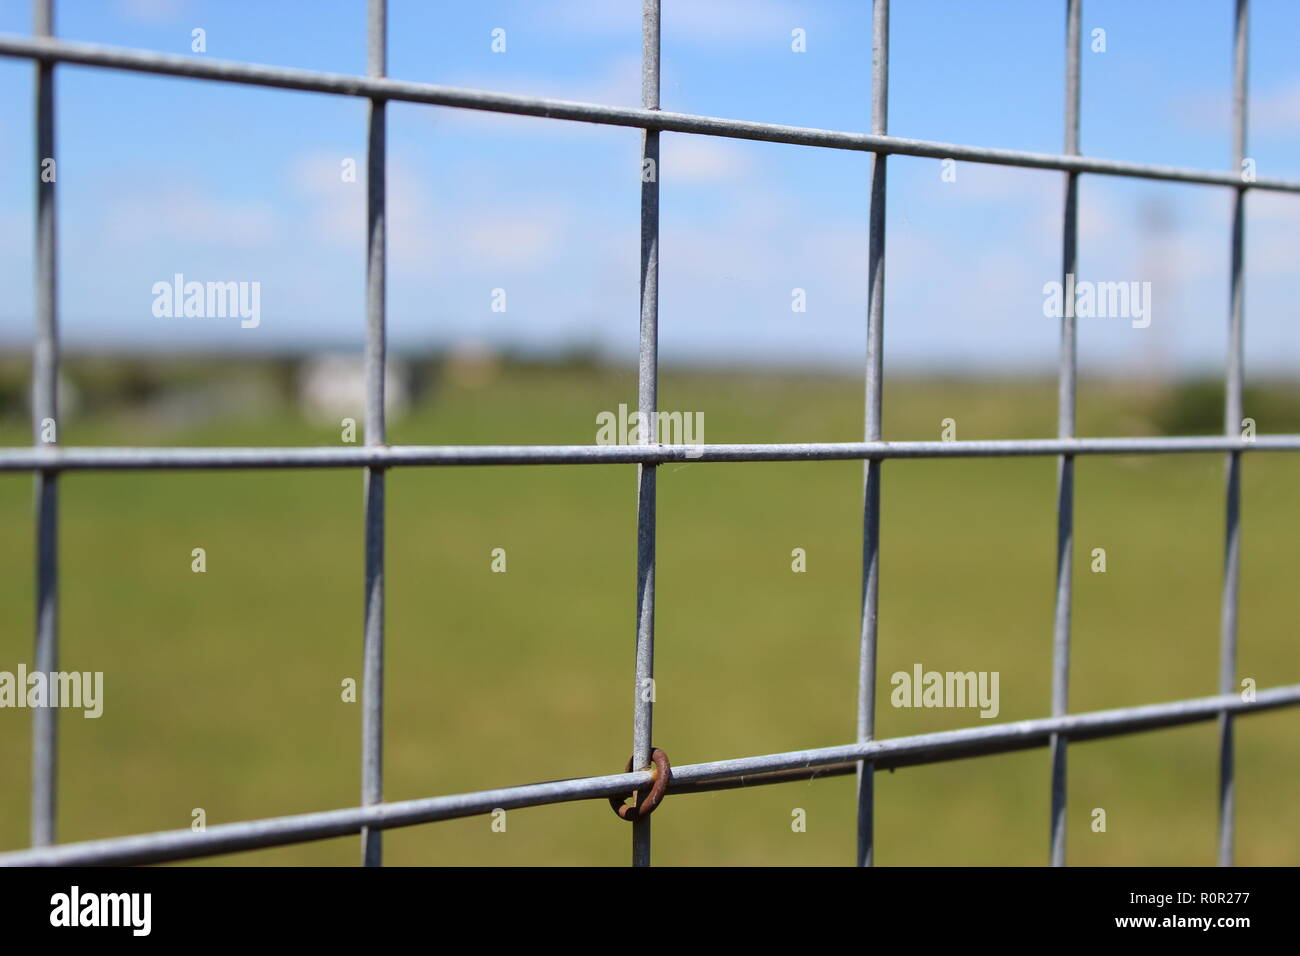 Wire grid separating the field - Stock Image